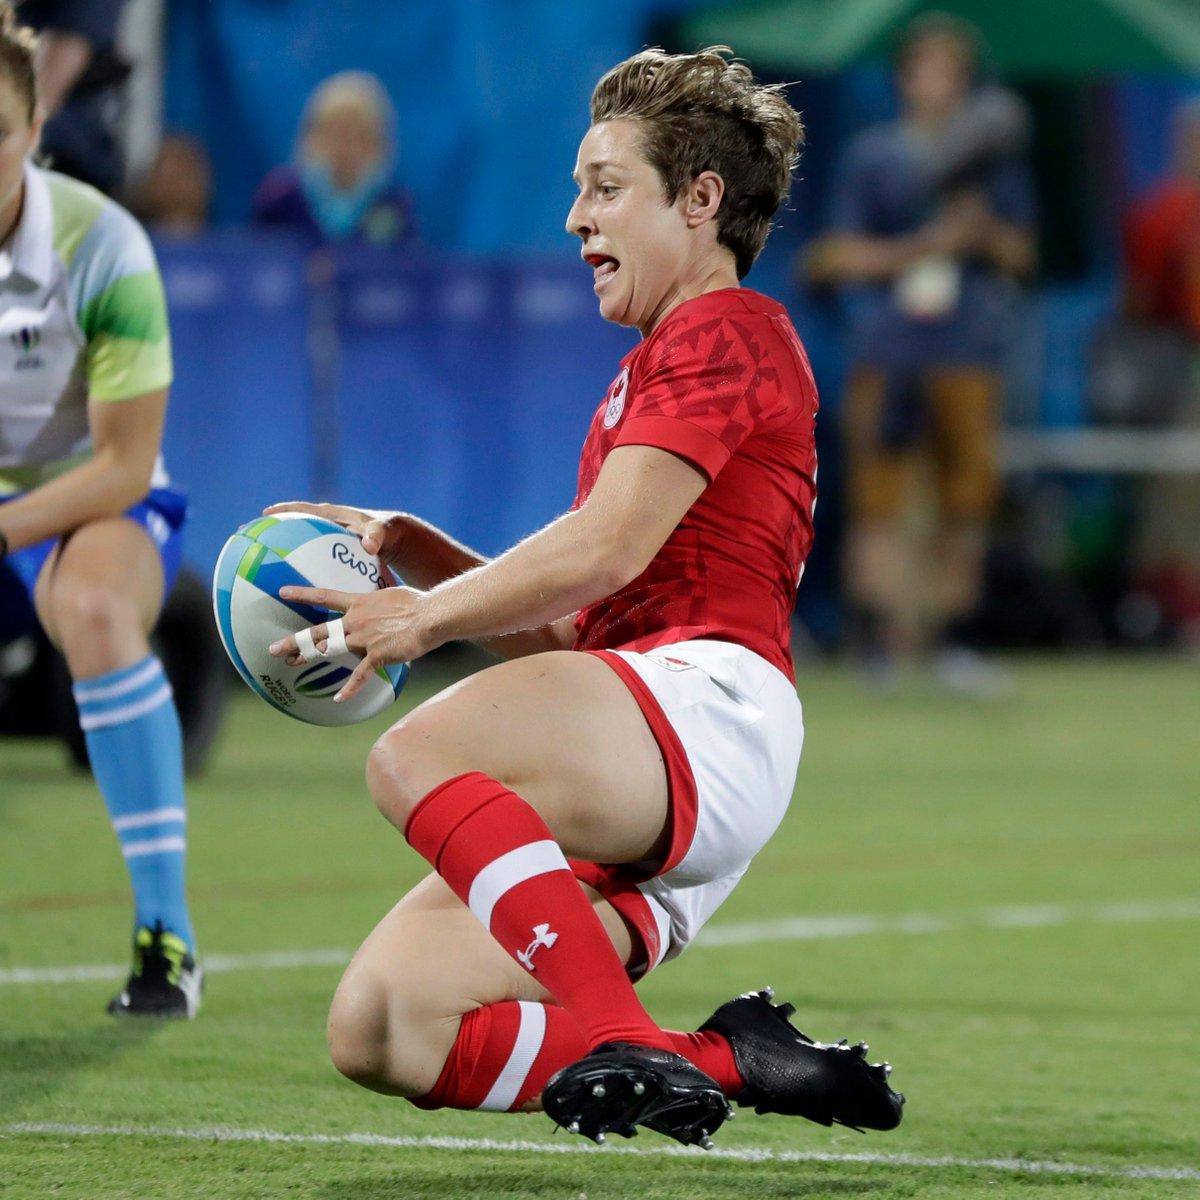 Recognized as one of the top try scorers in womens rugby sevens, @ghis_landry will be interviewed by @AndiPetrillo during todays @cbcsports broadcast 👏 Learn more about #TeamCanadas Ghislaine Landry before reliving the 🥉 game 👉bit.ly/2YLWWxp